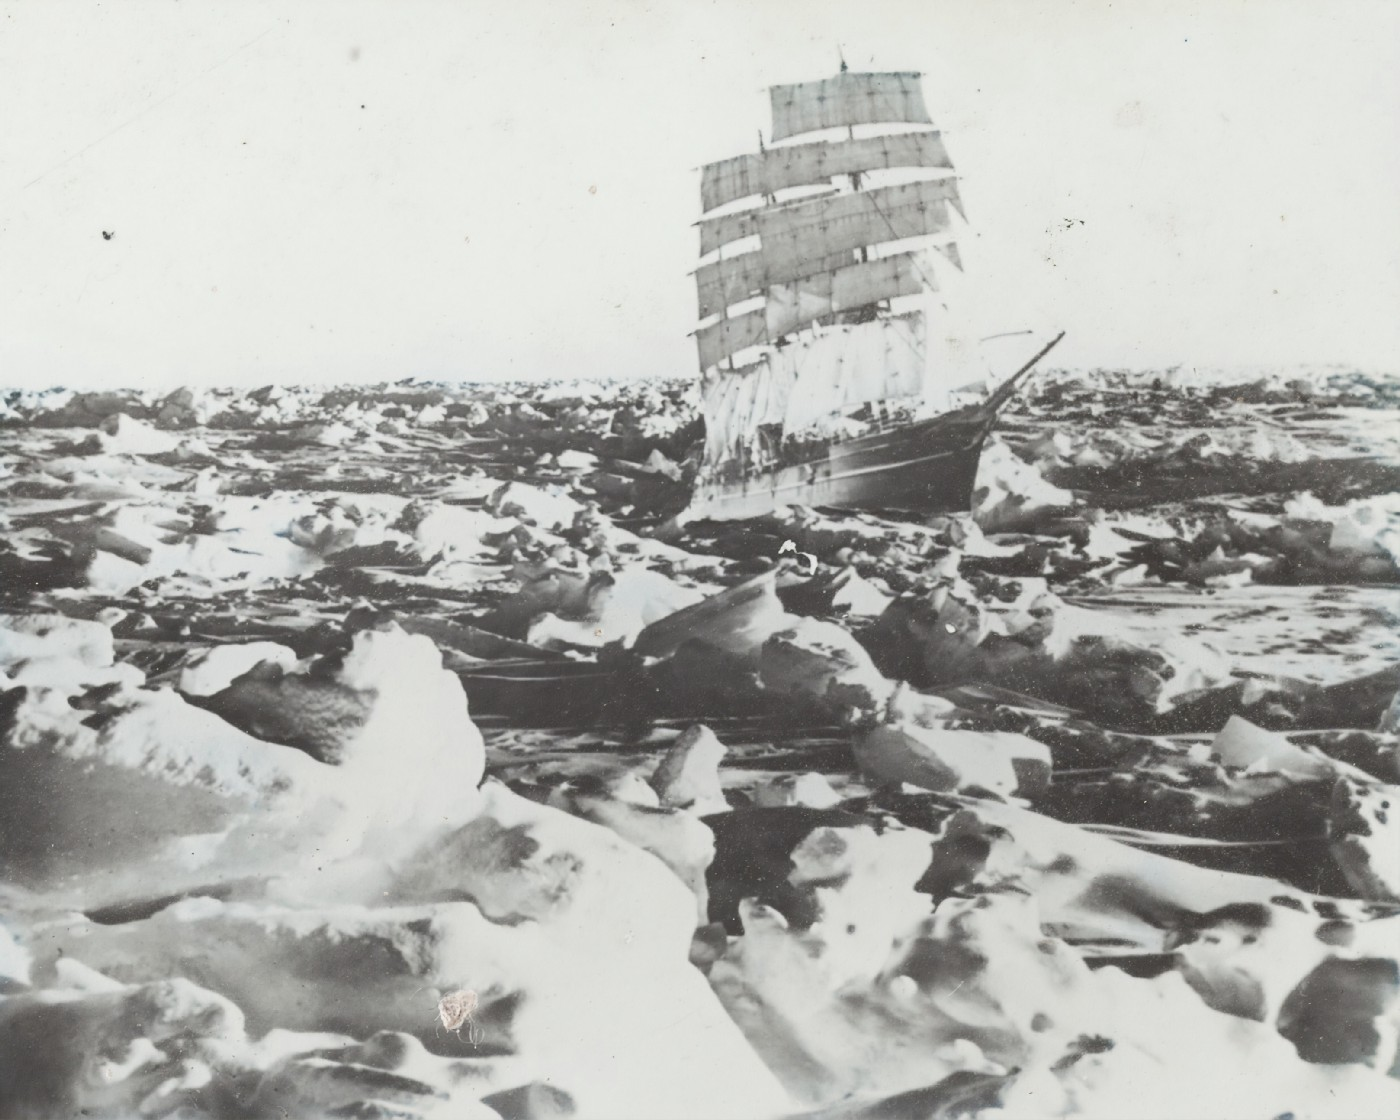 a black and white photo of a large ship sailing amidst the frozen ice caps in the ocean